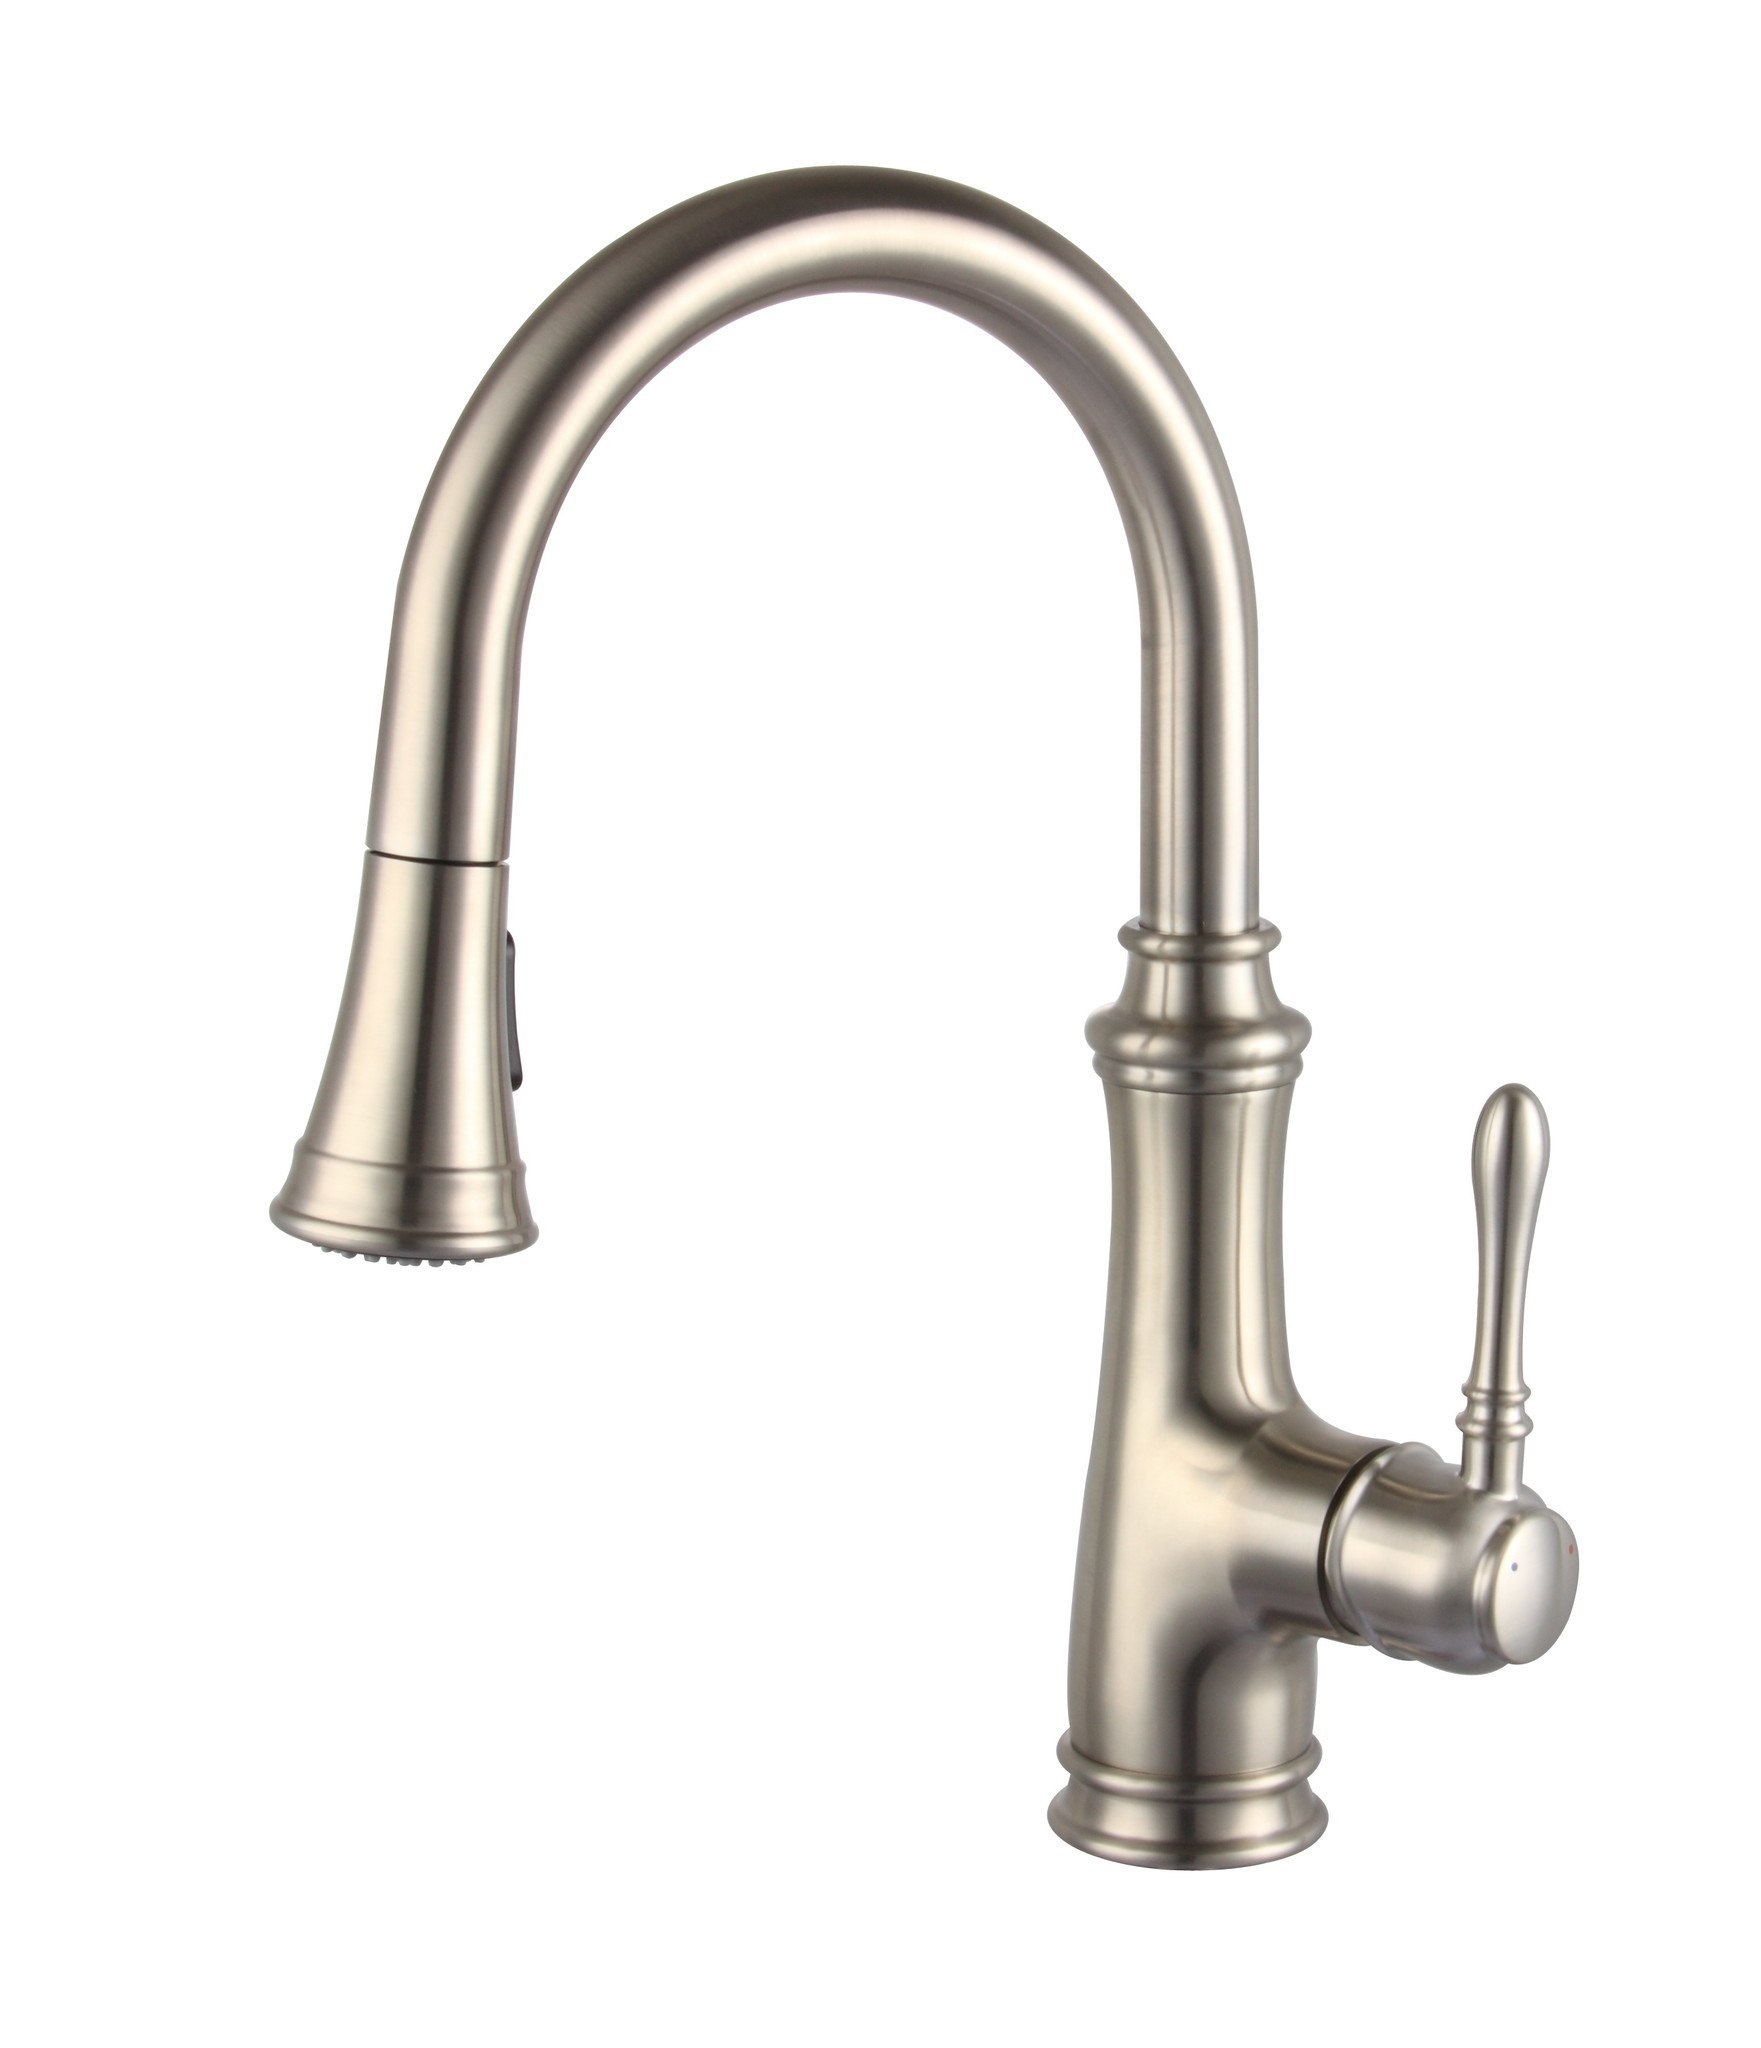 Kitchen Sink Faucet | Kitchen Faucets | Danze Kitchen Faucets